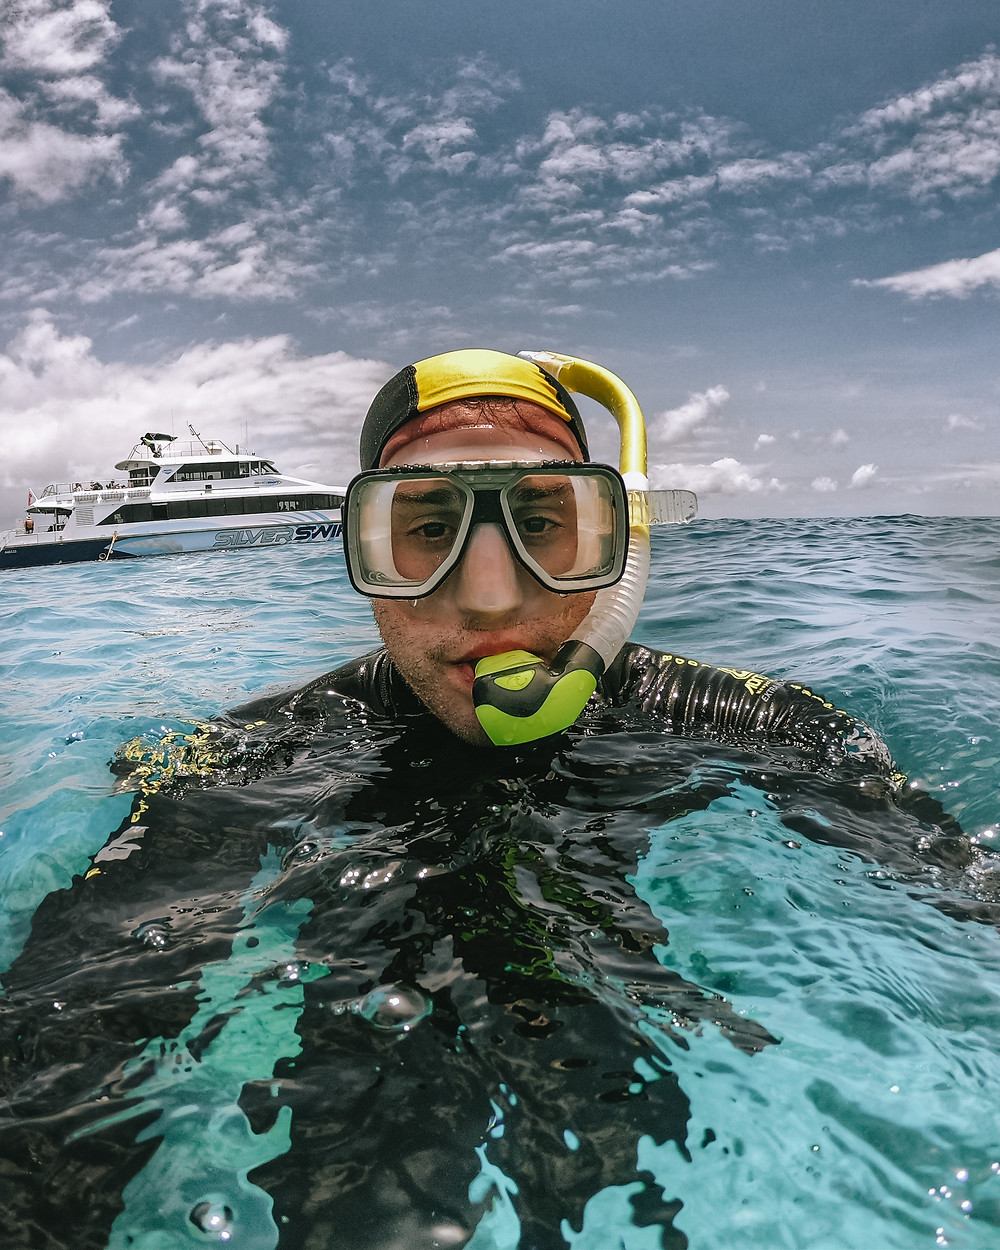 Man snorkeling the great barrier reef with a rash guard protection